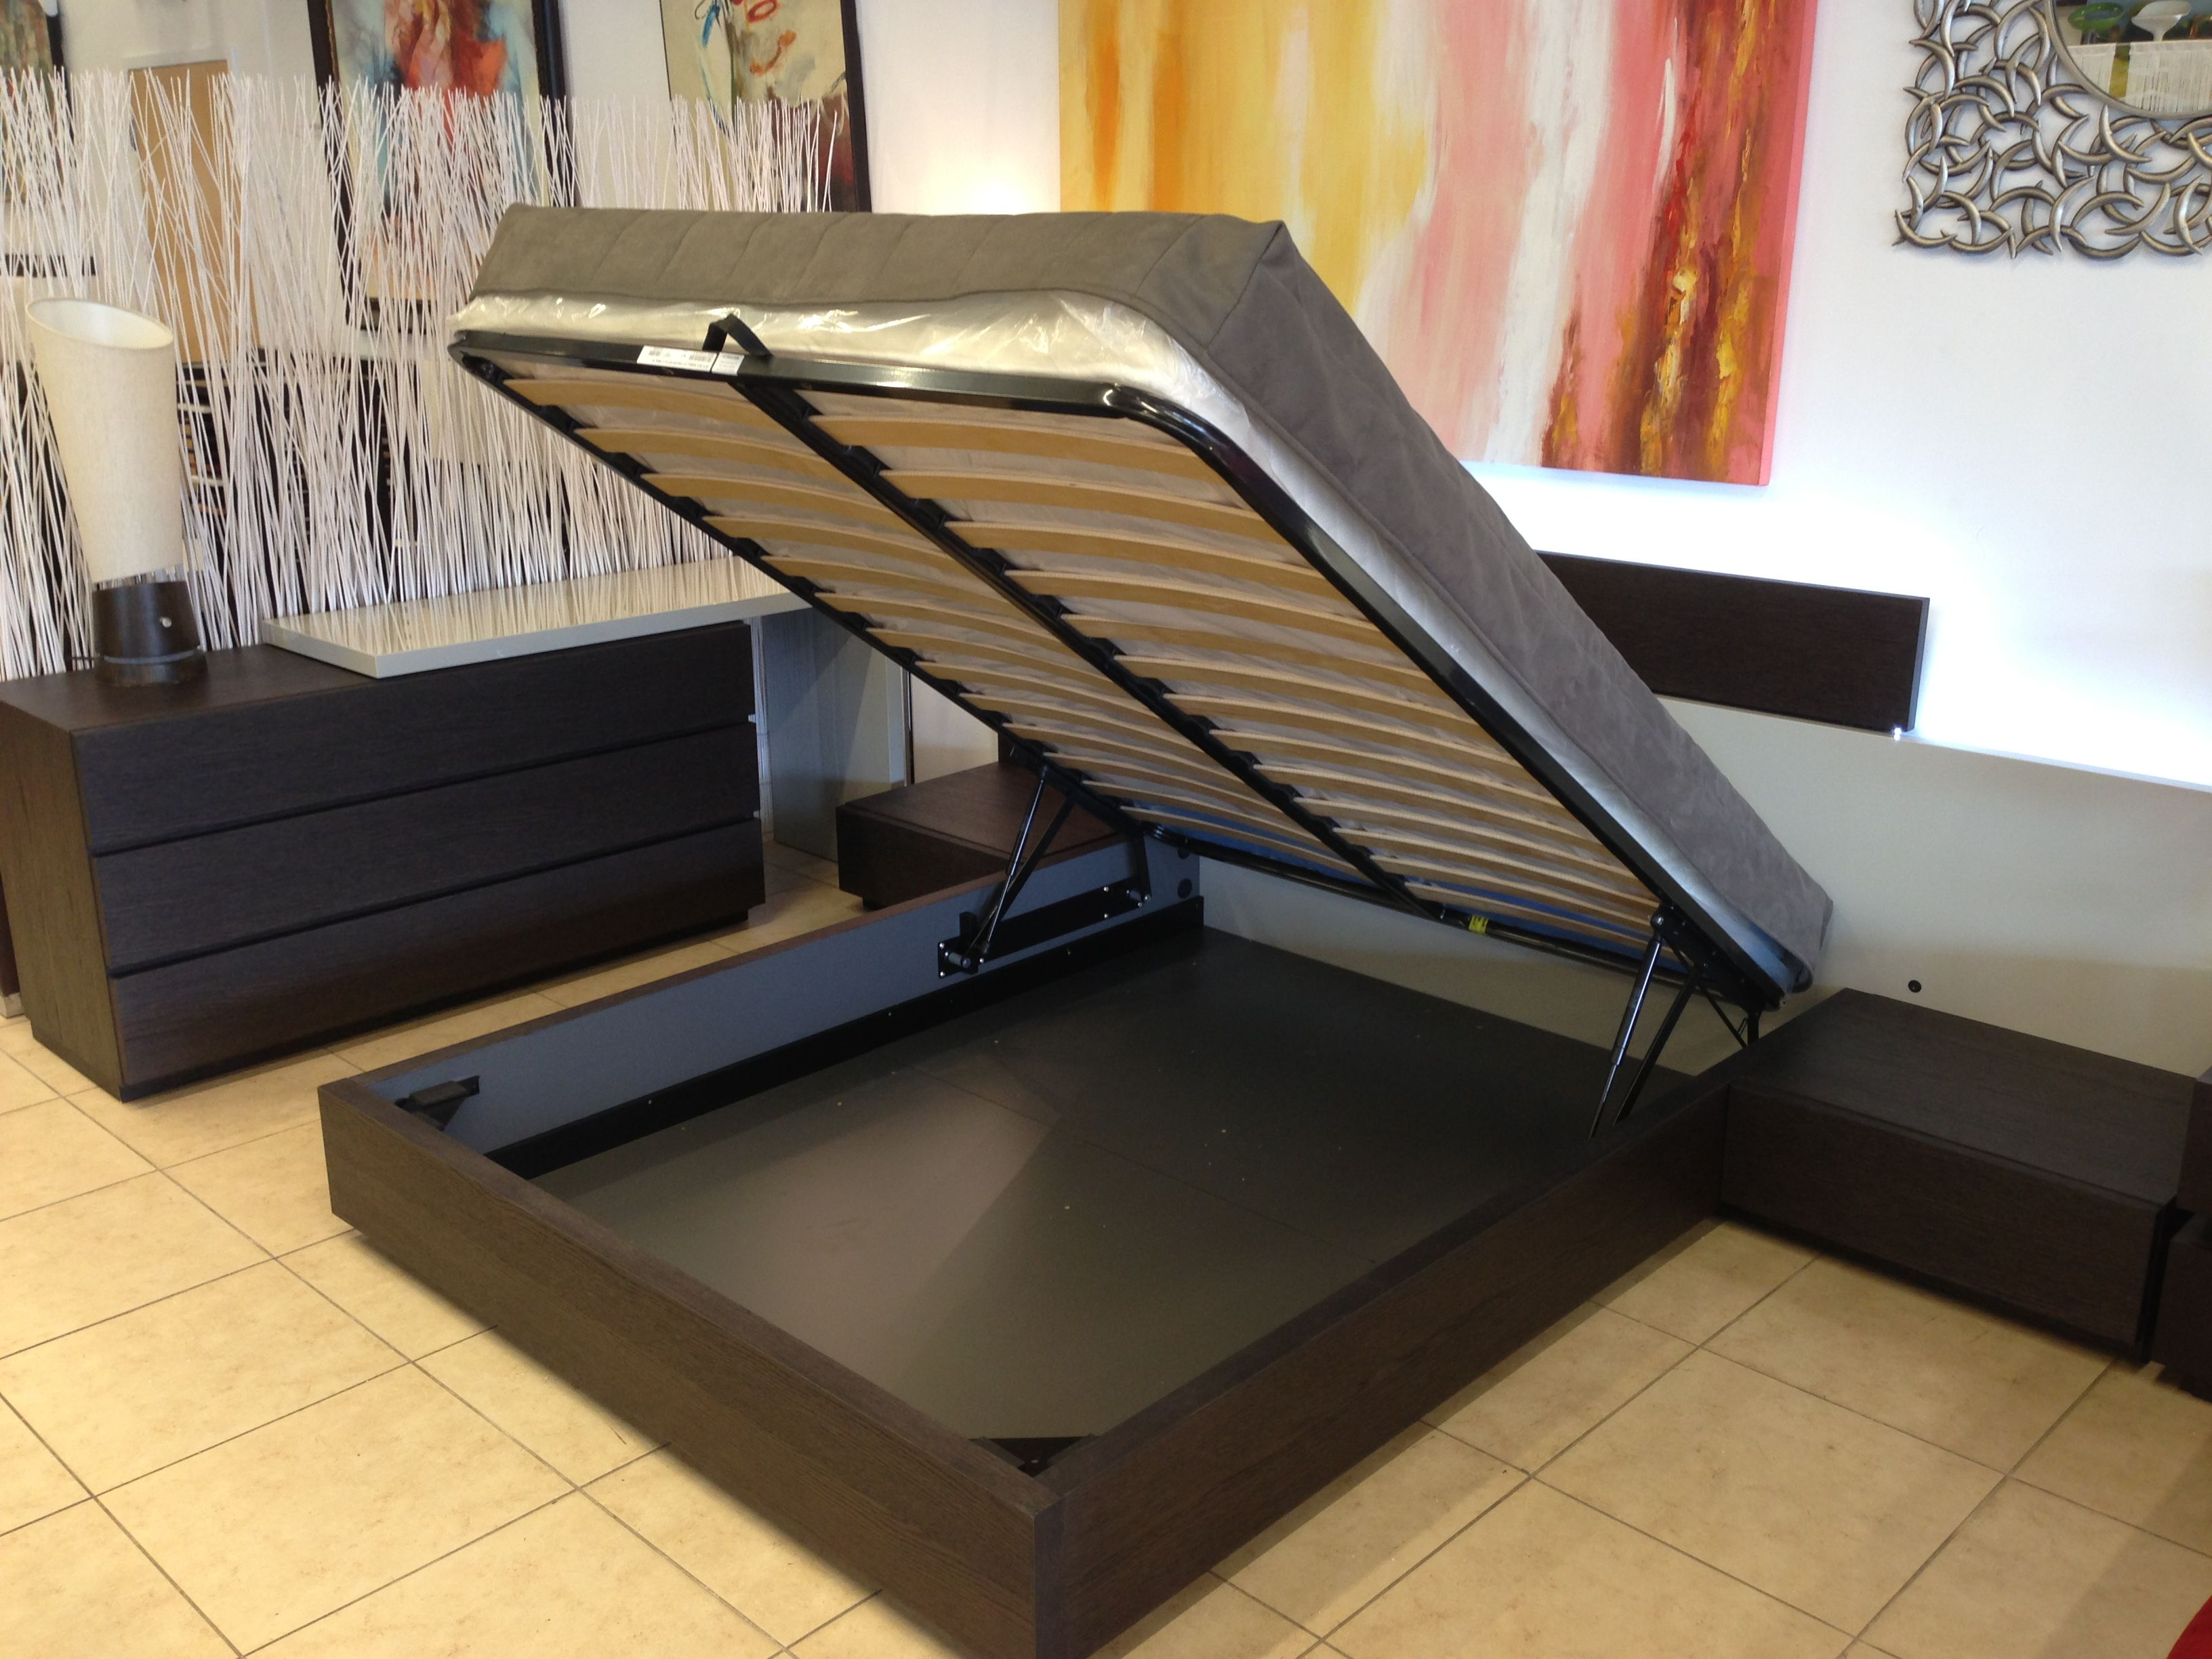 Hydraulic Lift Storage Bed Made In Italy Furniture